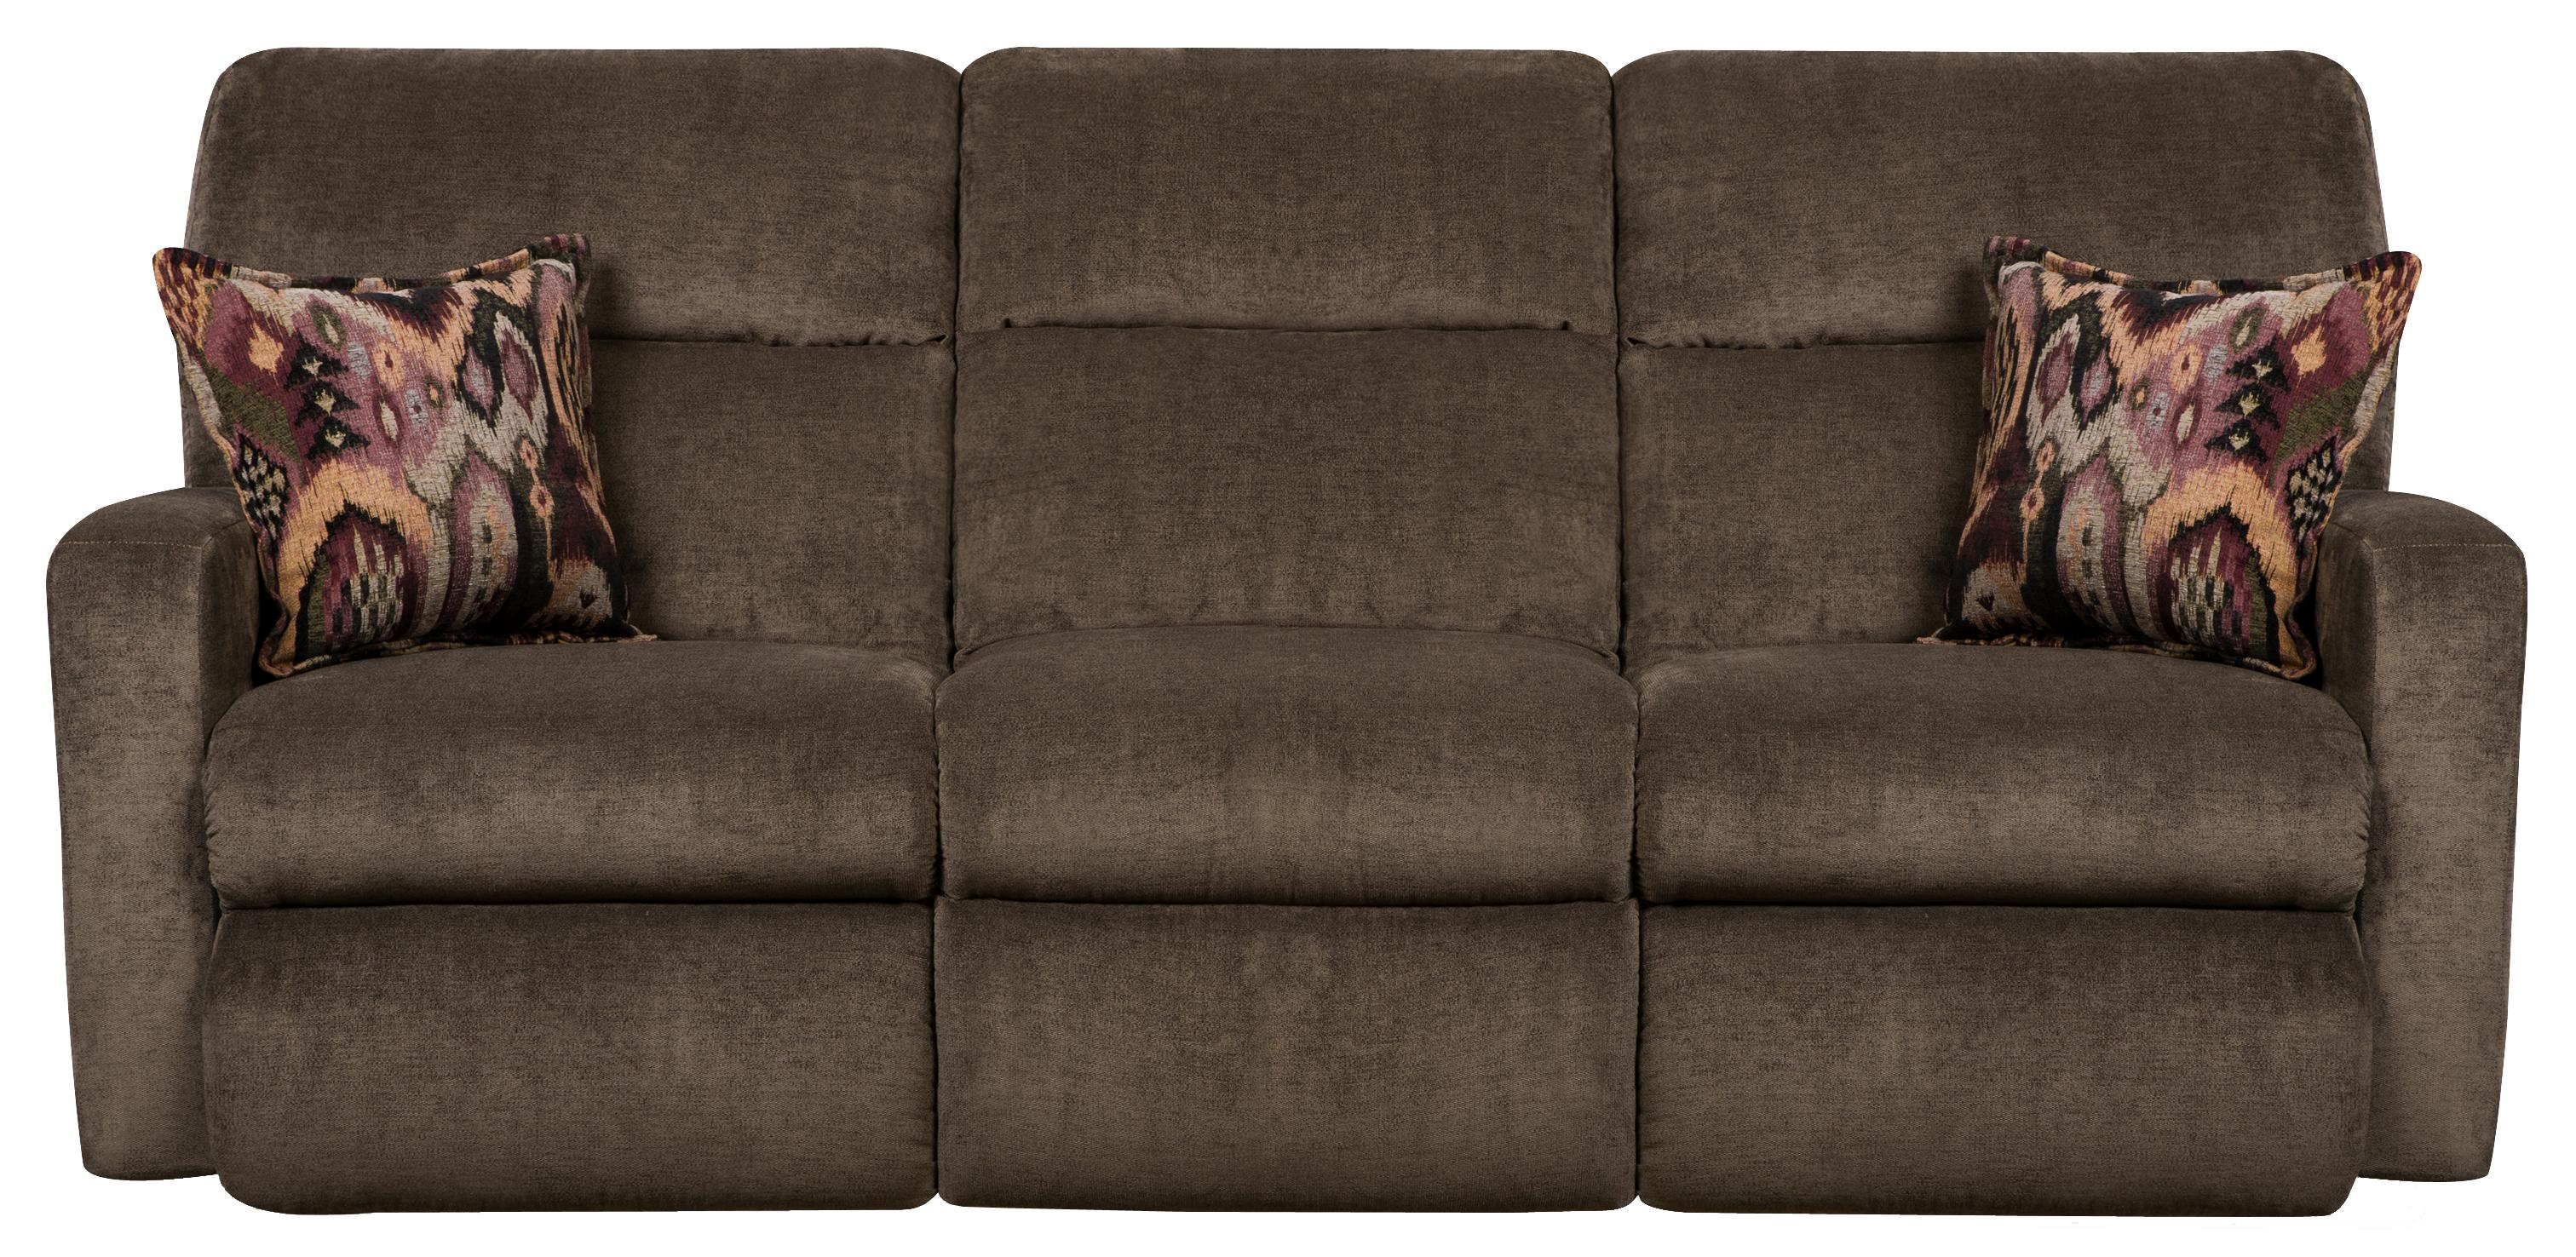 Contemporary Styled Double Reclining Sofa for Family Rooms by